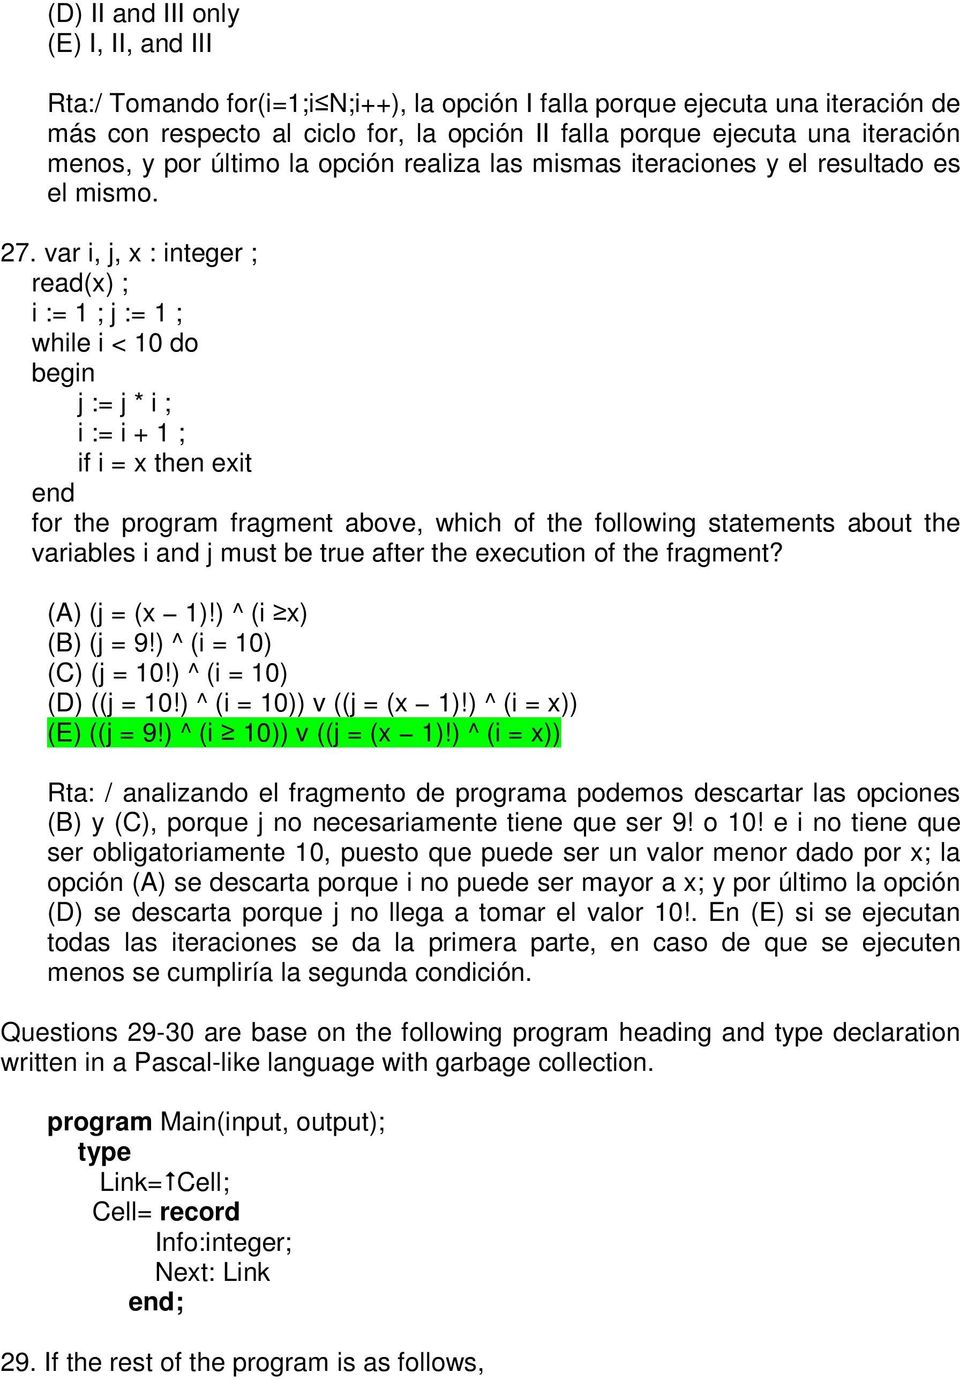 var i, j, x : integer ; read(x) ; i := 1 ; j := 1 ; while i < 10 do begin j := j * i ; i := i + 1 ; if i = x then exit end for the program fragment above, which of the following statements about the